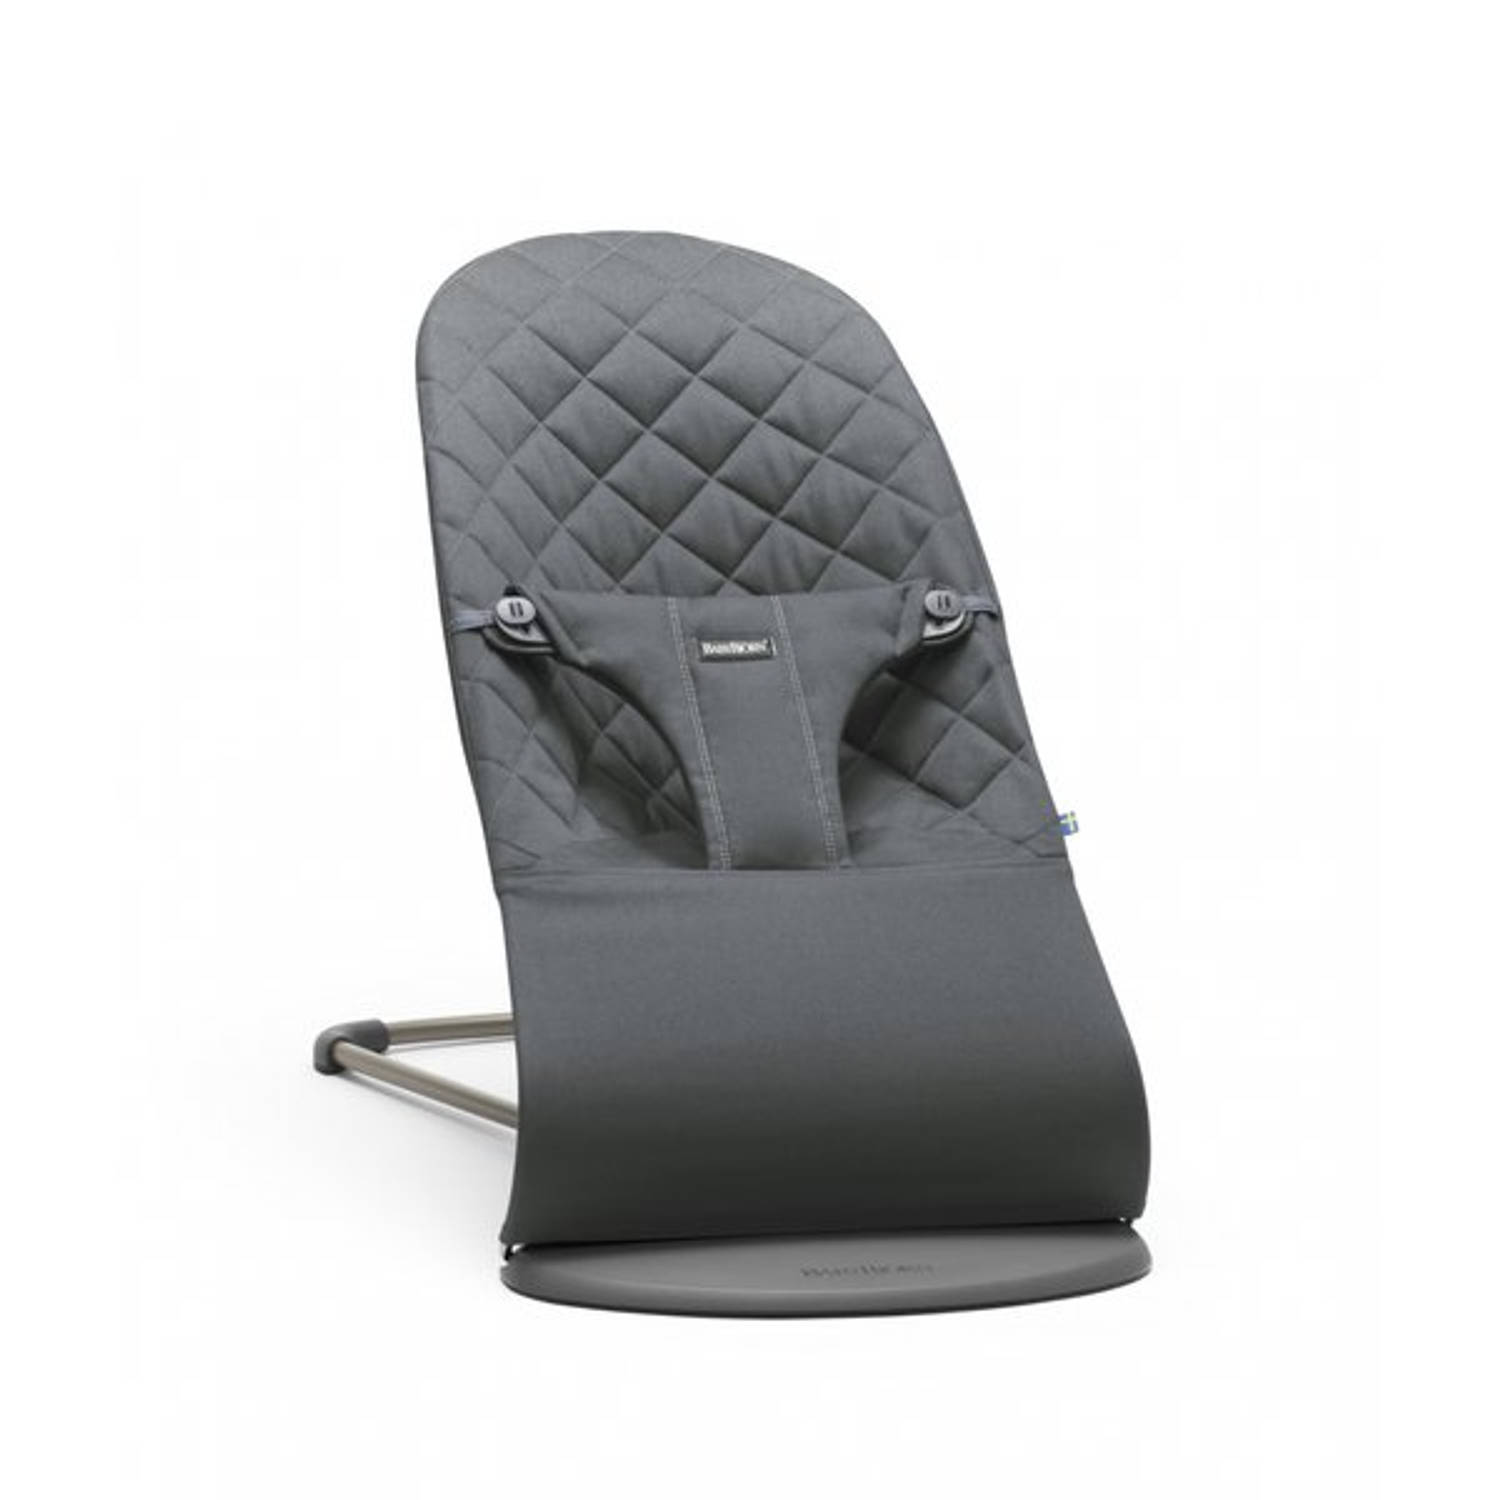 BabyBjorn Bliss Cotton Anthracite